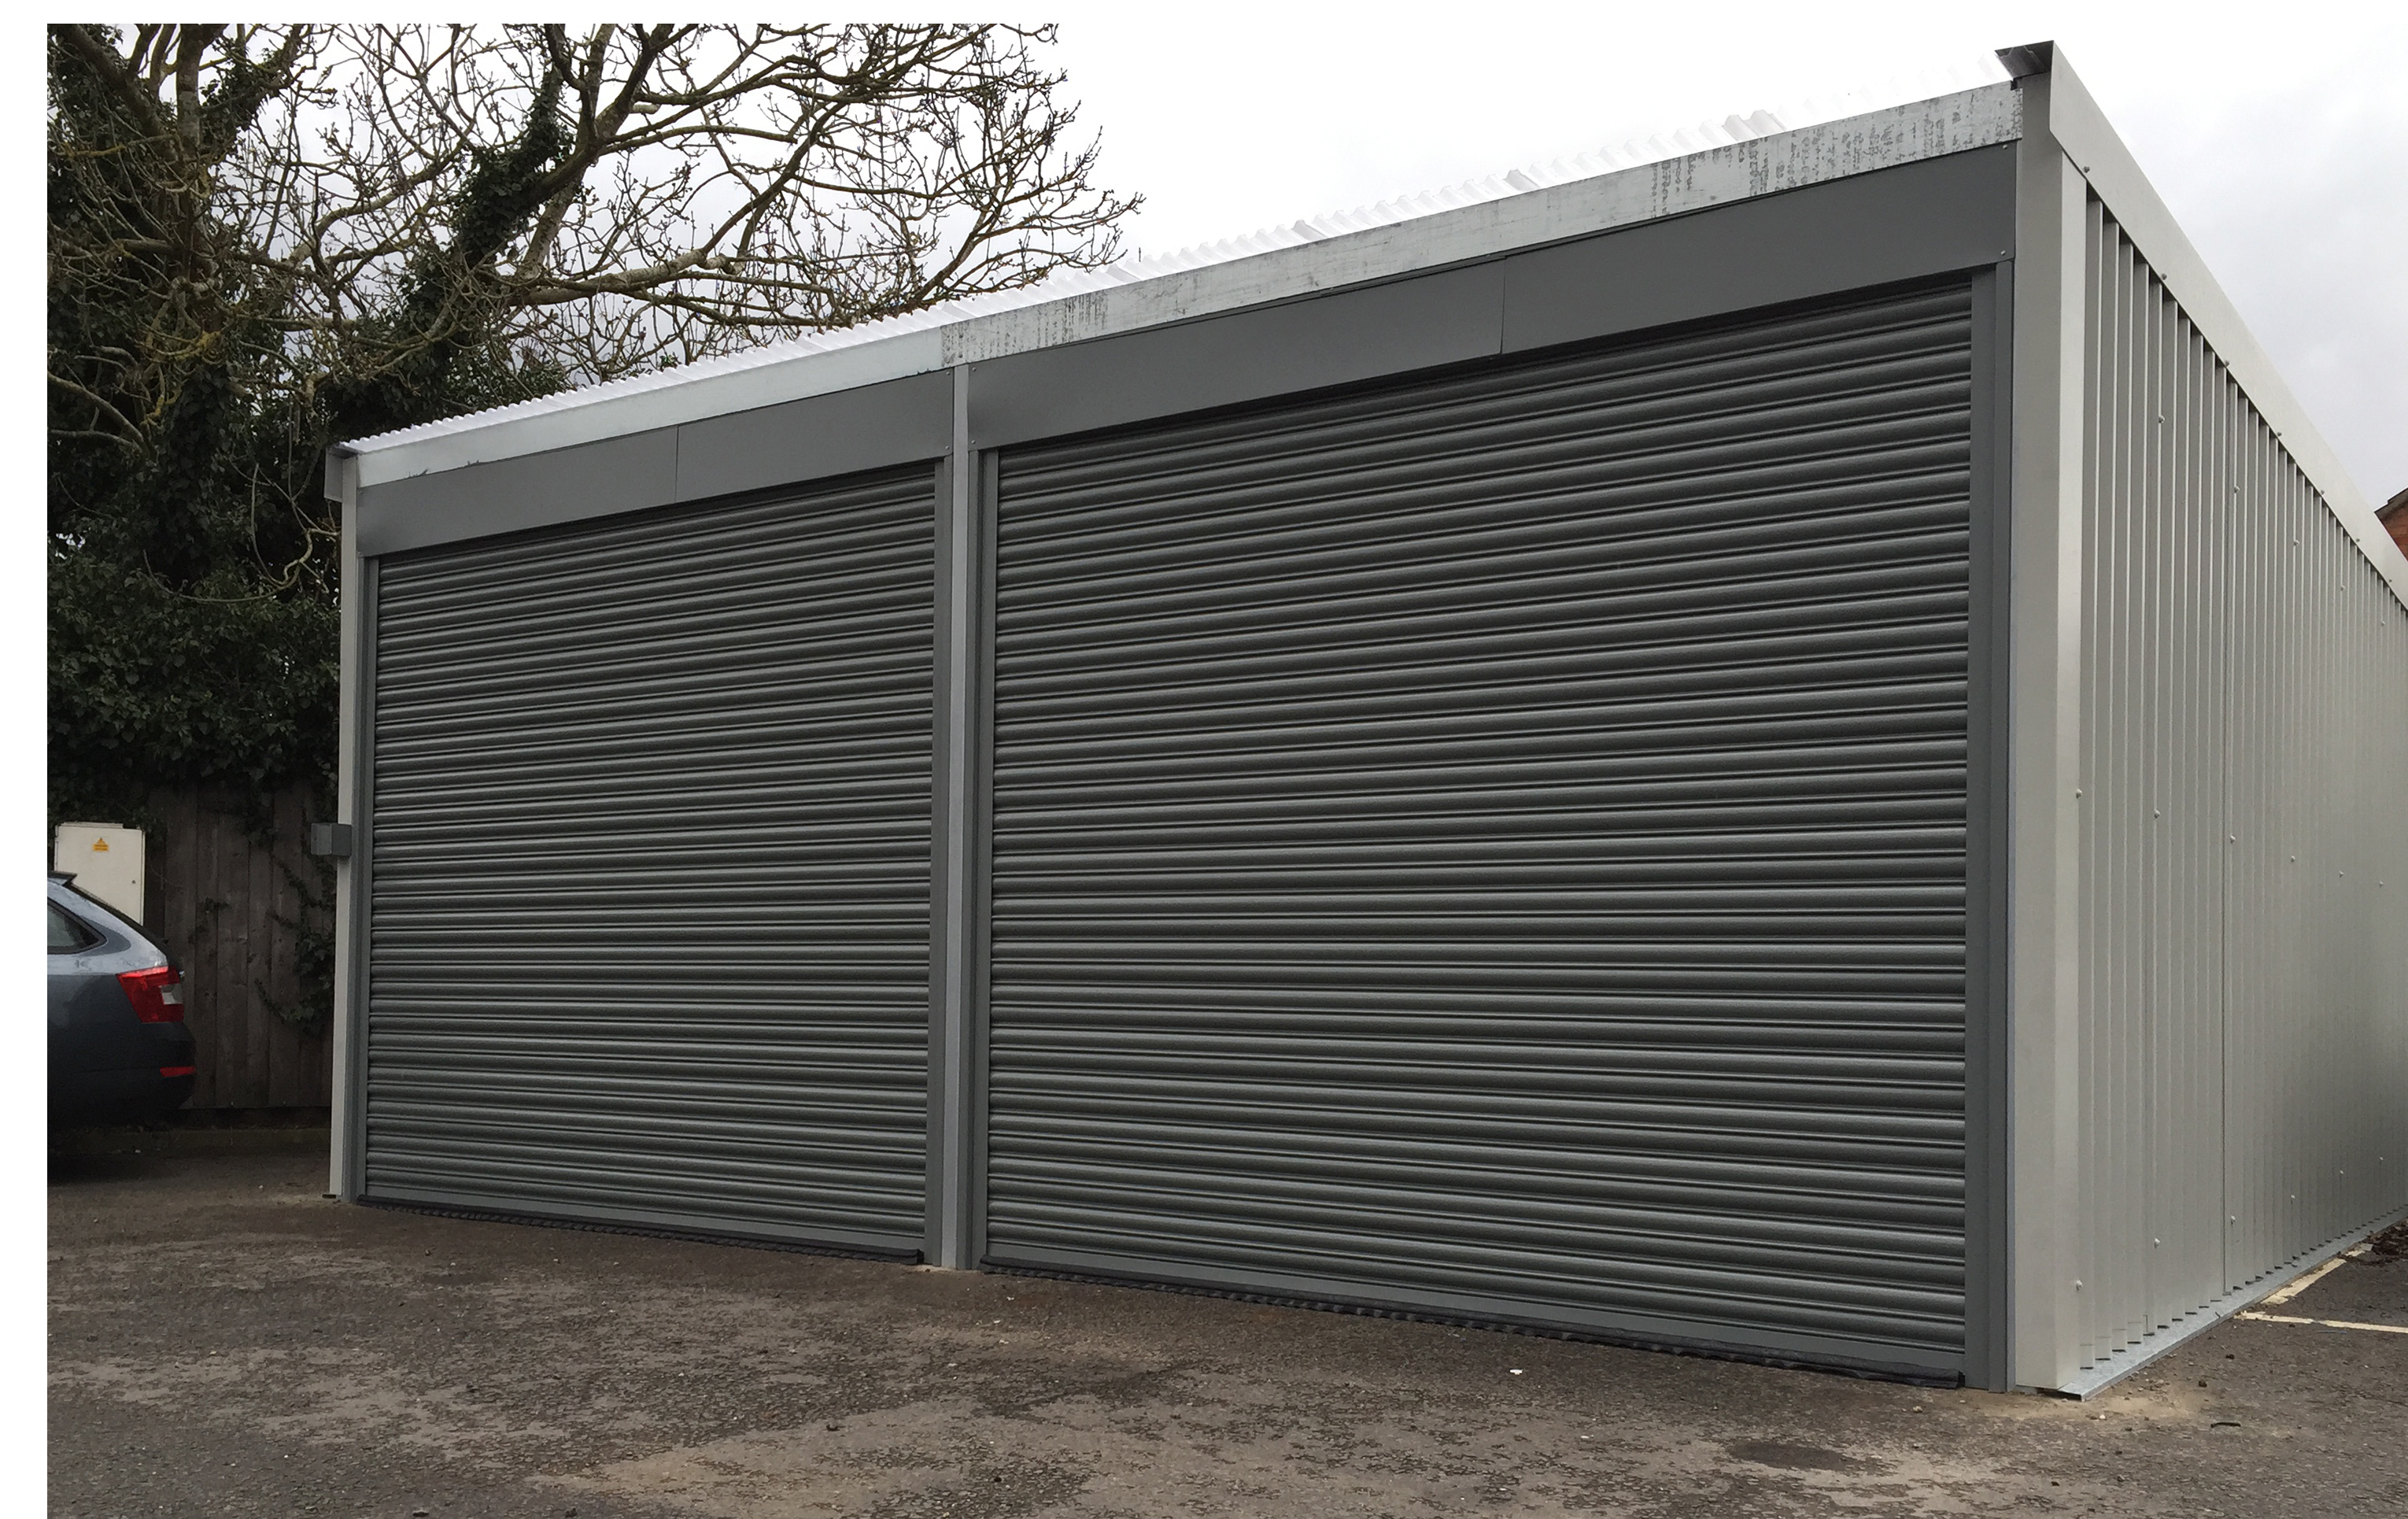 Roller shutter garage doors hrmann garador gliderol and one of the roller shutters most impressive properties is that its space requirements are minimal standing out from other doors roller shutters have a rubansaba